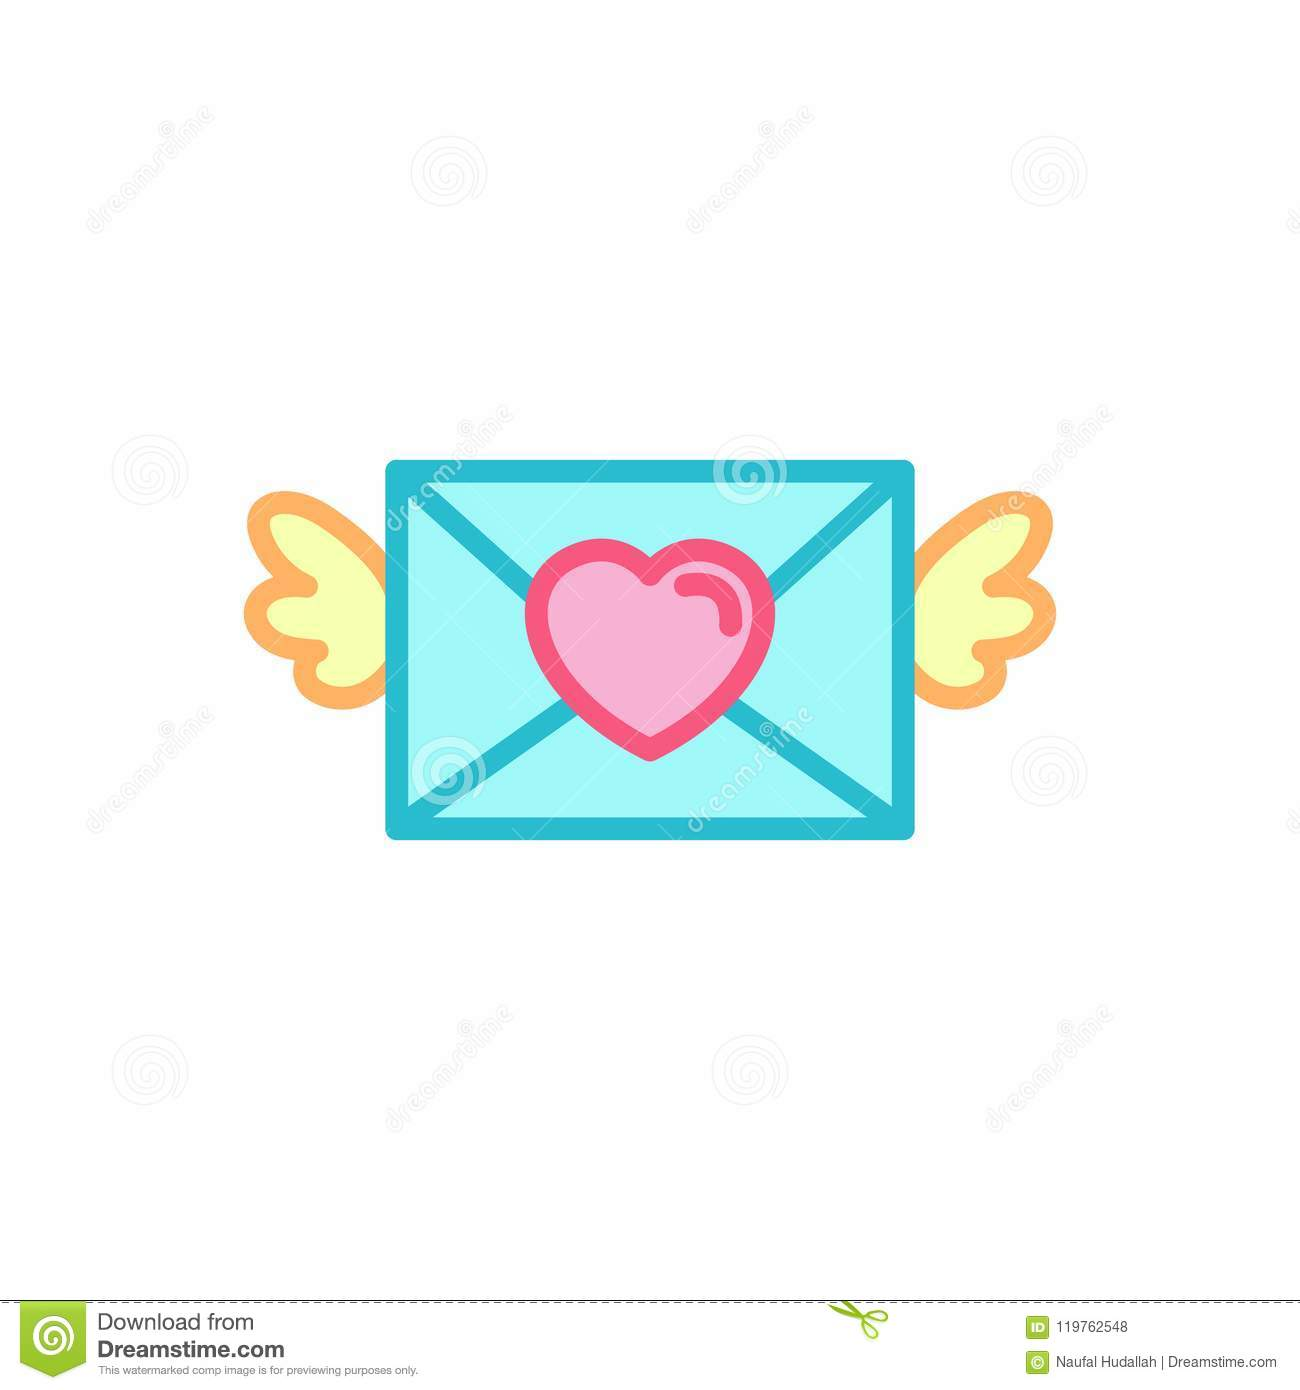 love with winged mail love letter icon simple heart illustration line style logo template design